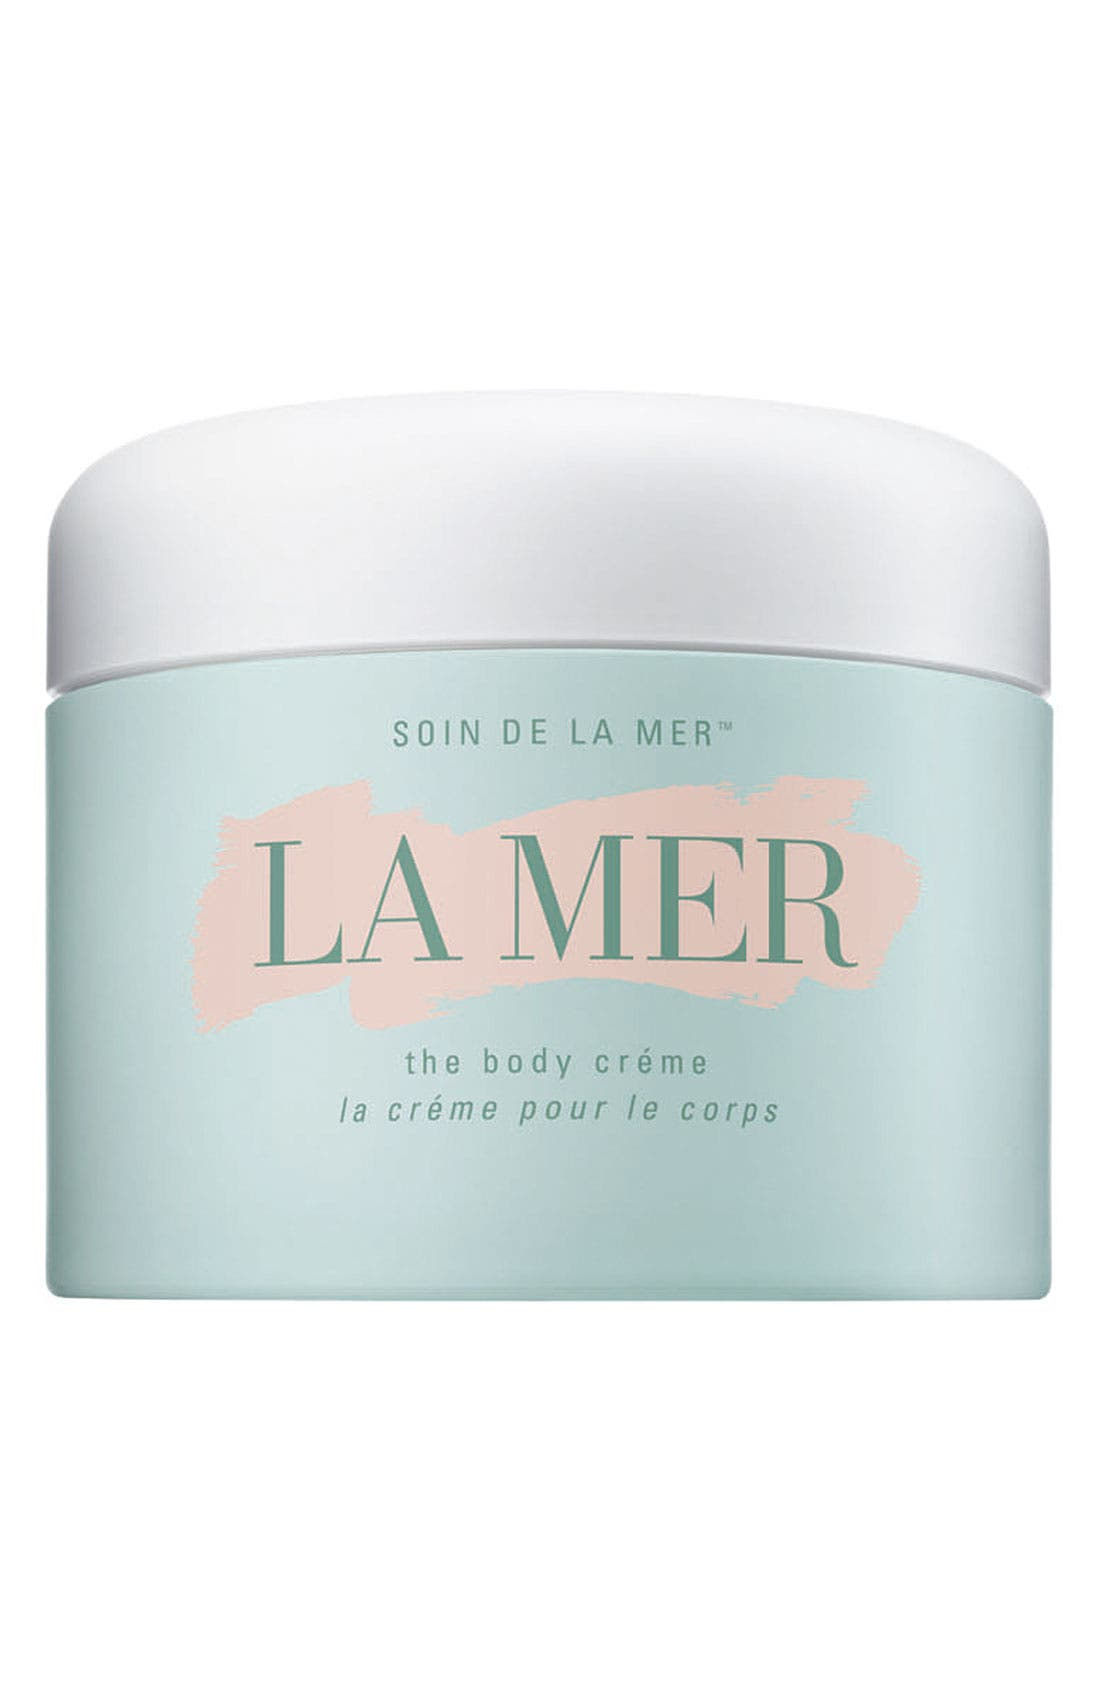 La Mer 'The Body Crème' Jar